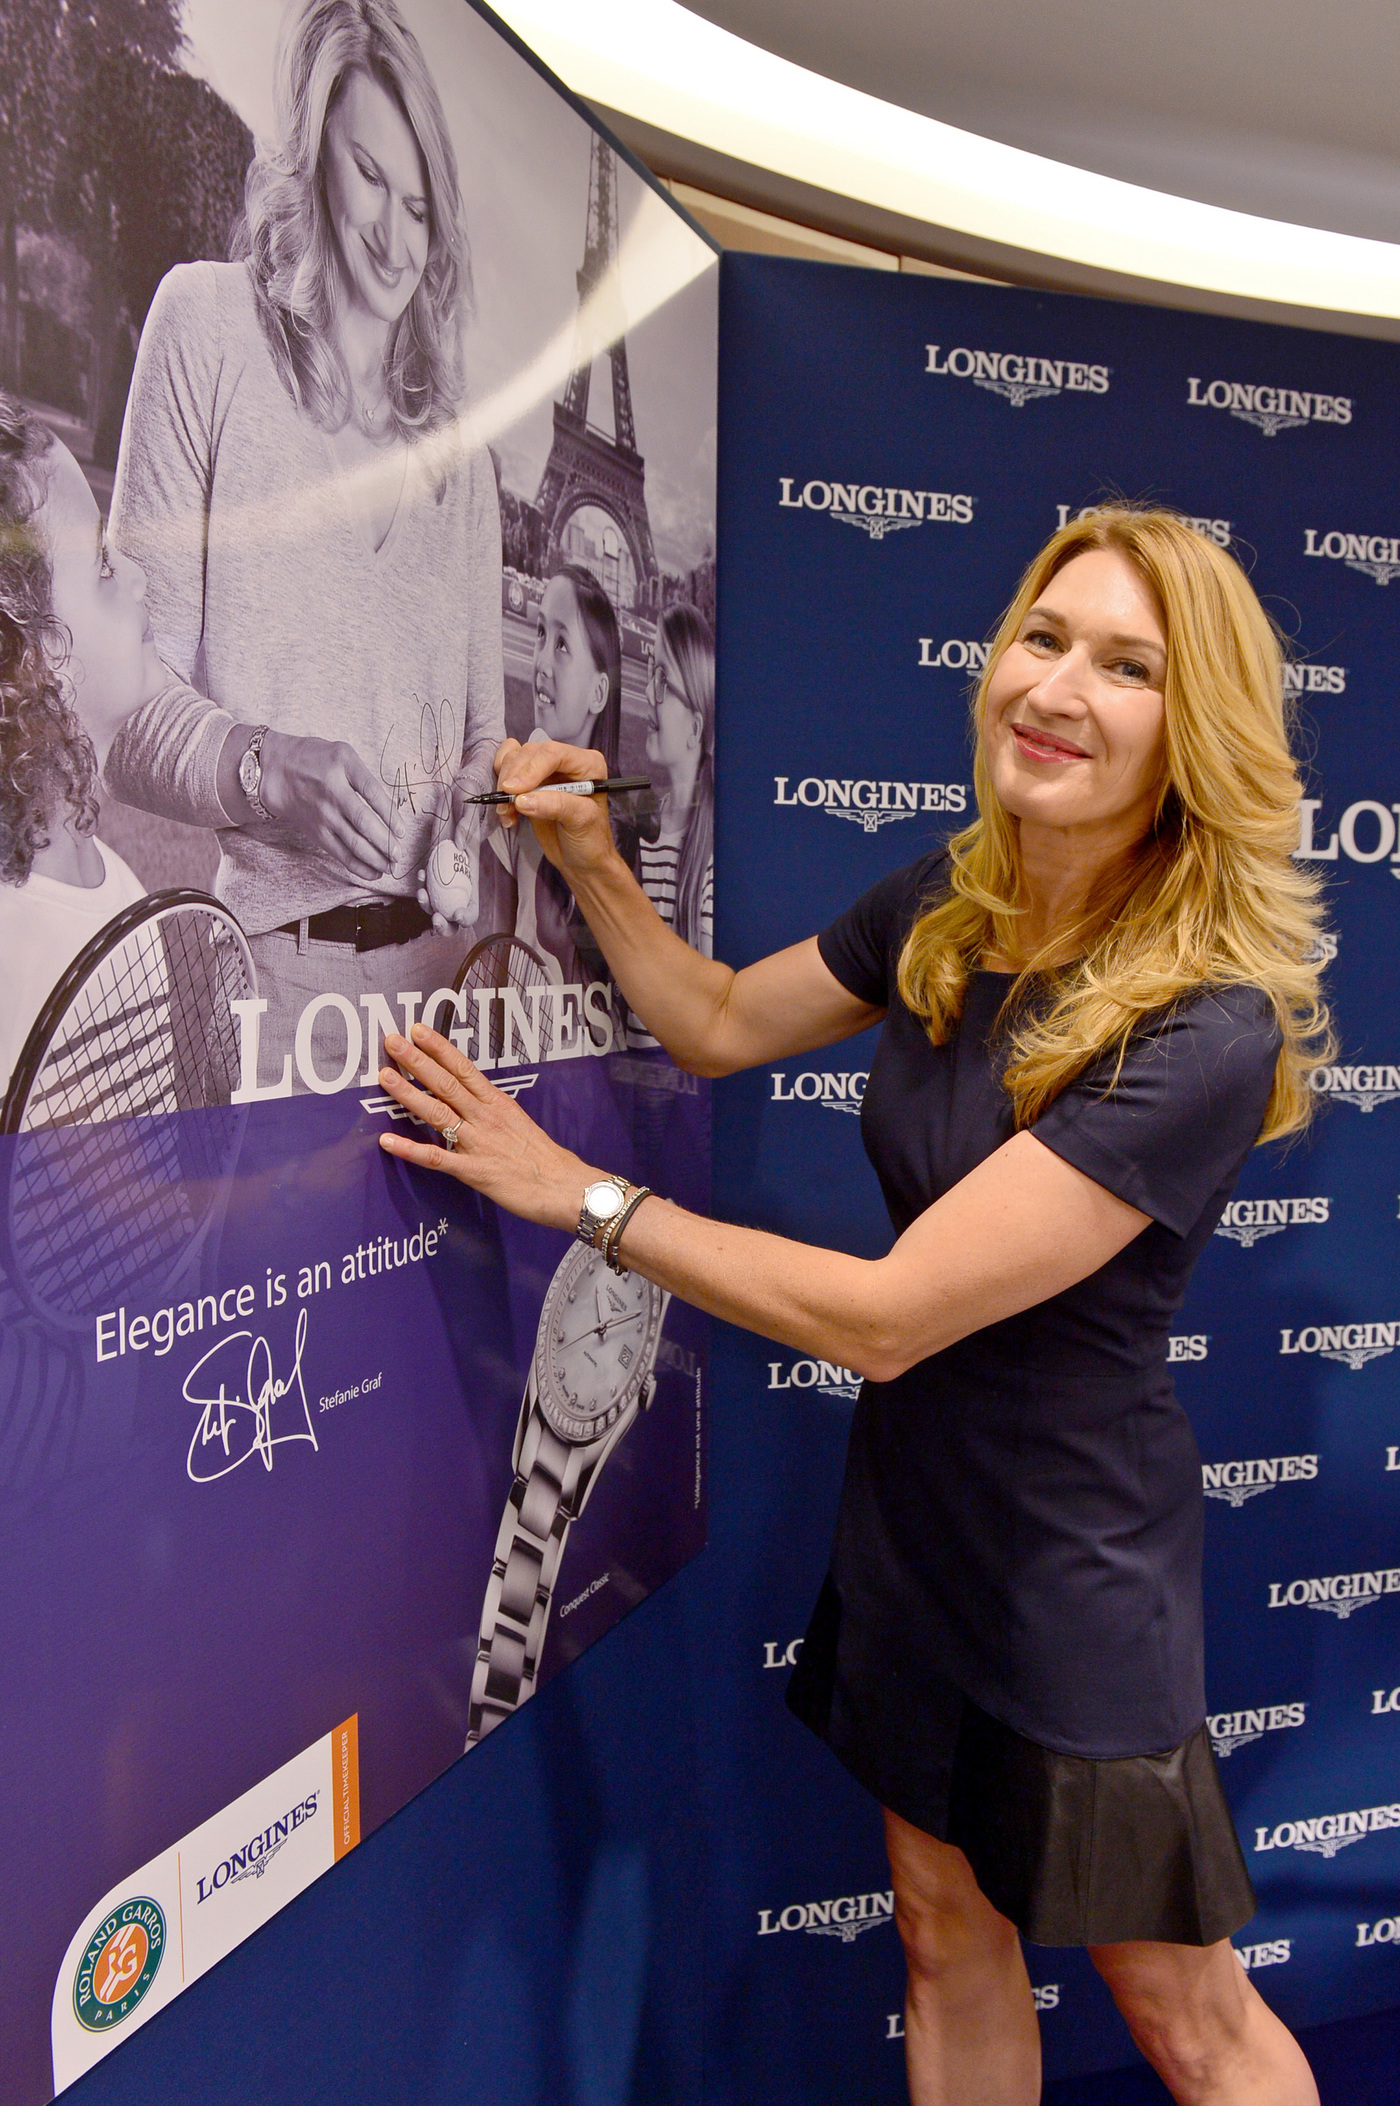 Longines Corporate Event: Longines officially inaugurates its first monobrand boutique in France in presence of Ambassador of Elegance Stefanie Graf 4